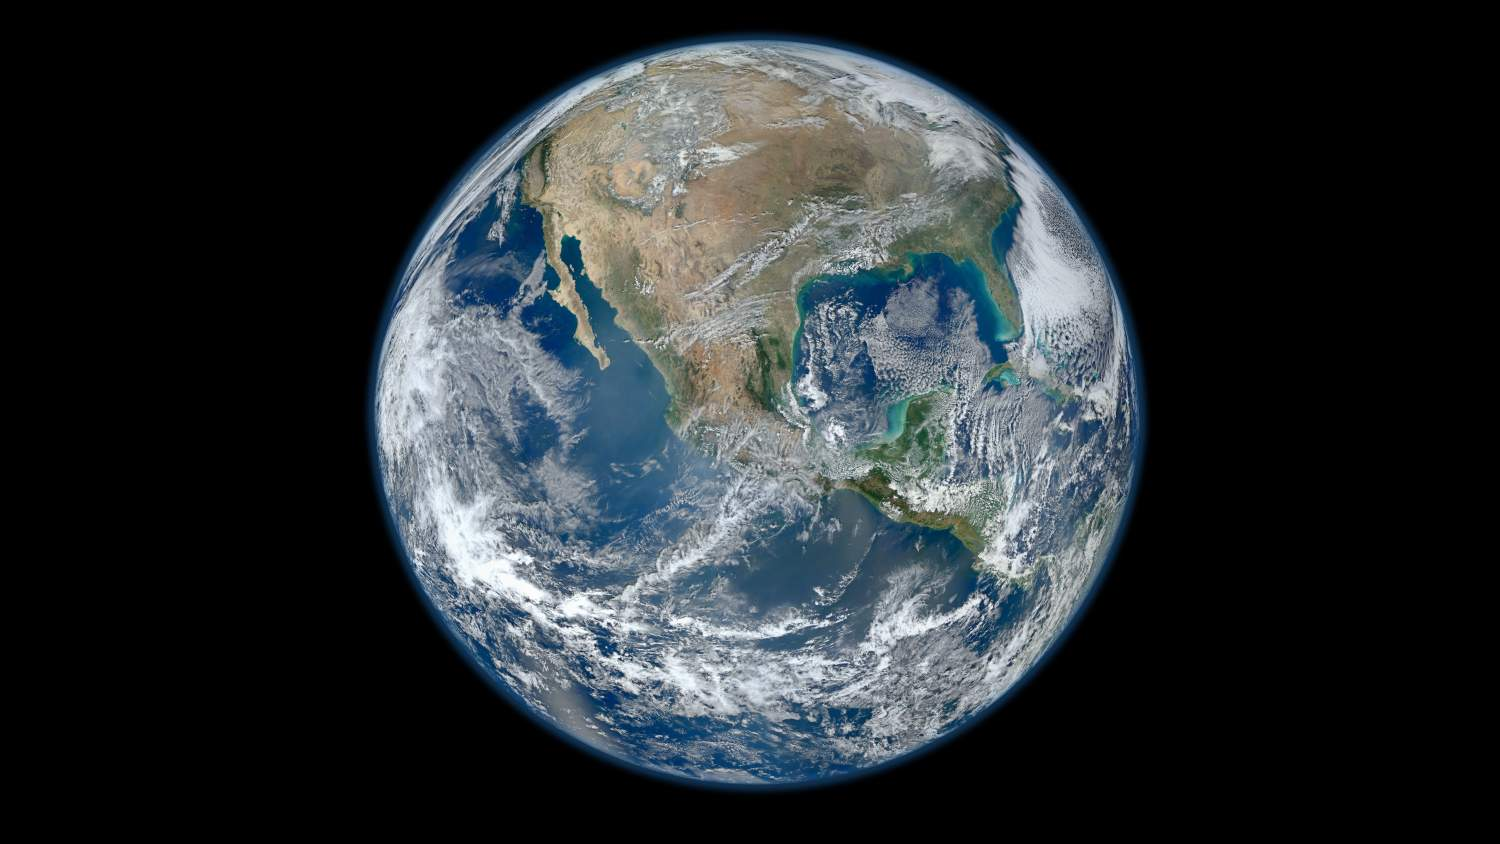 A 'Blue Marble' image of the Earth